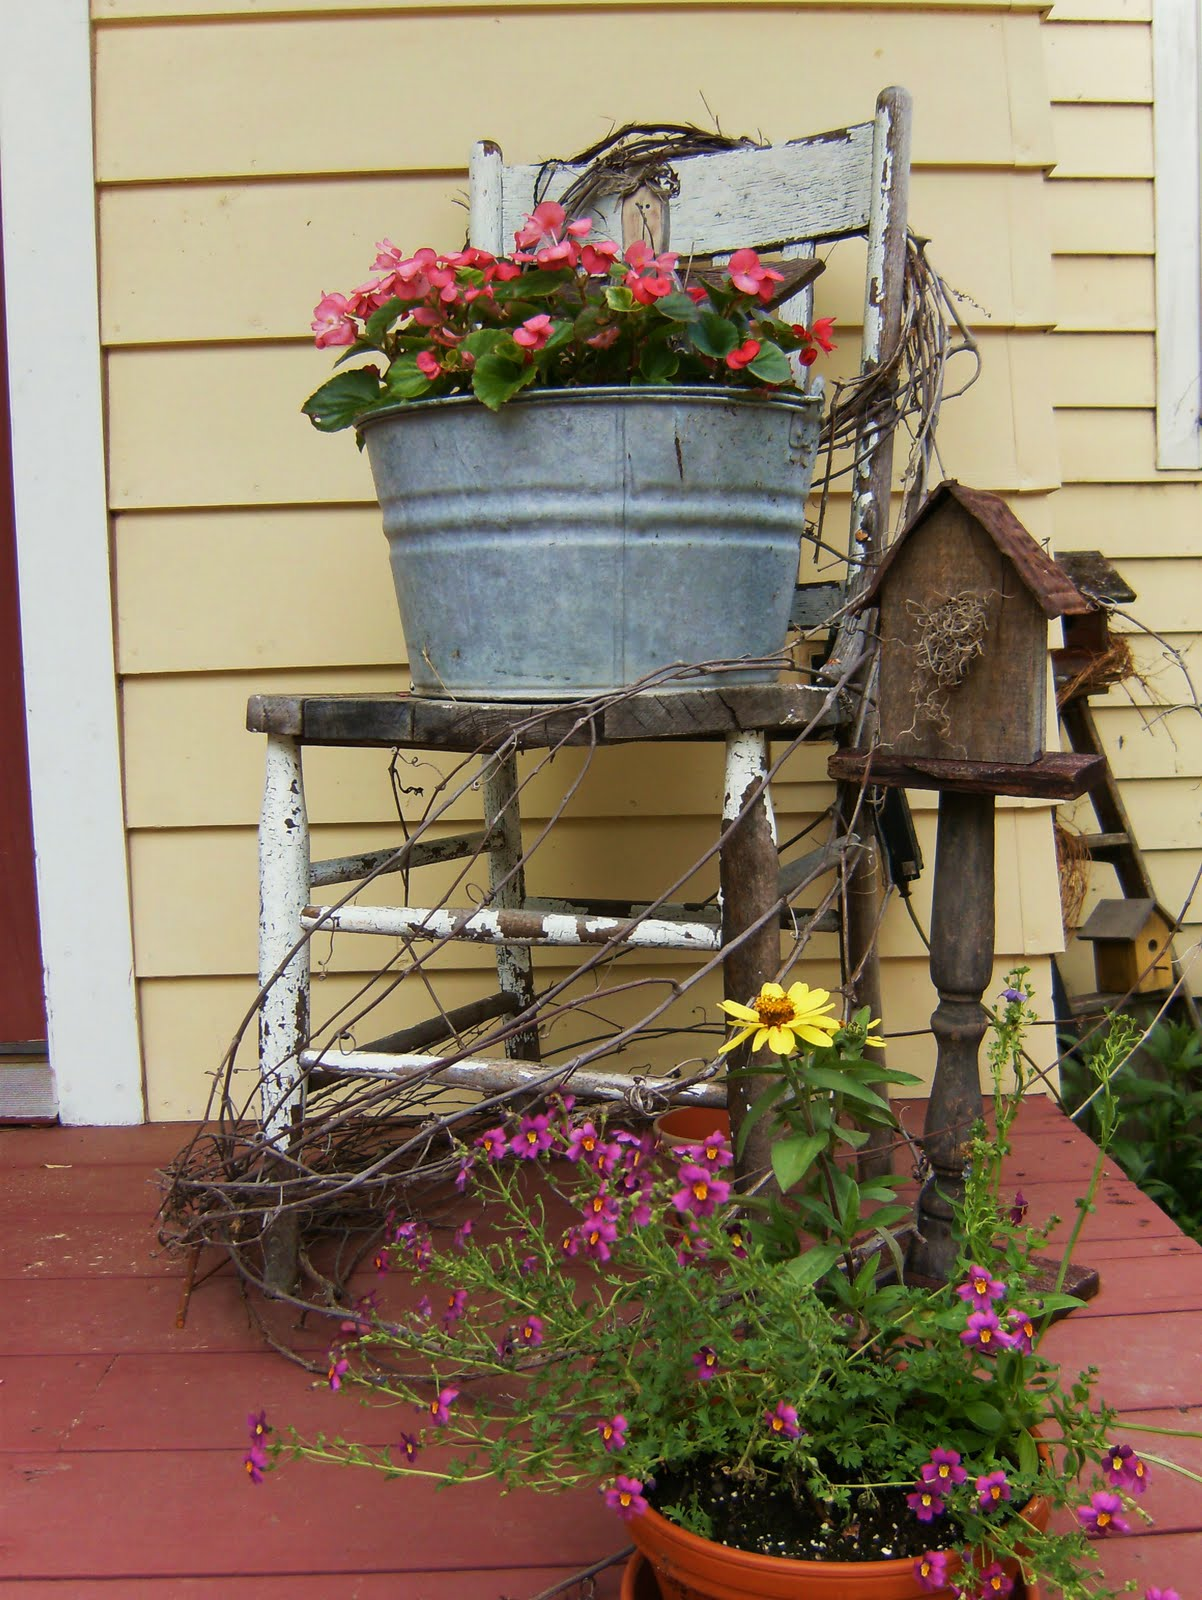 Bittersweet farm prim pails posies and porches garden for The country porch com